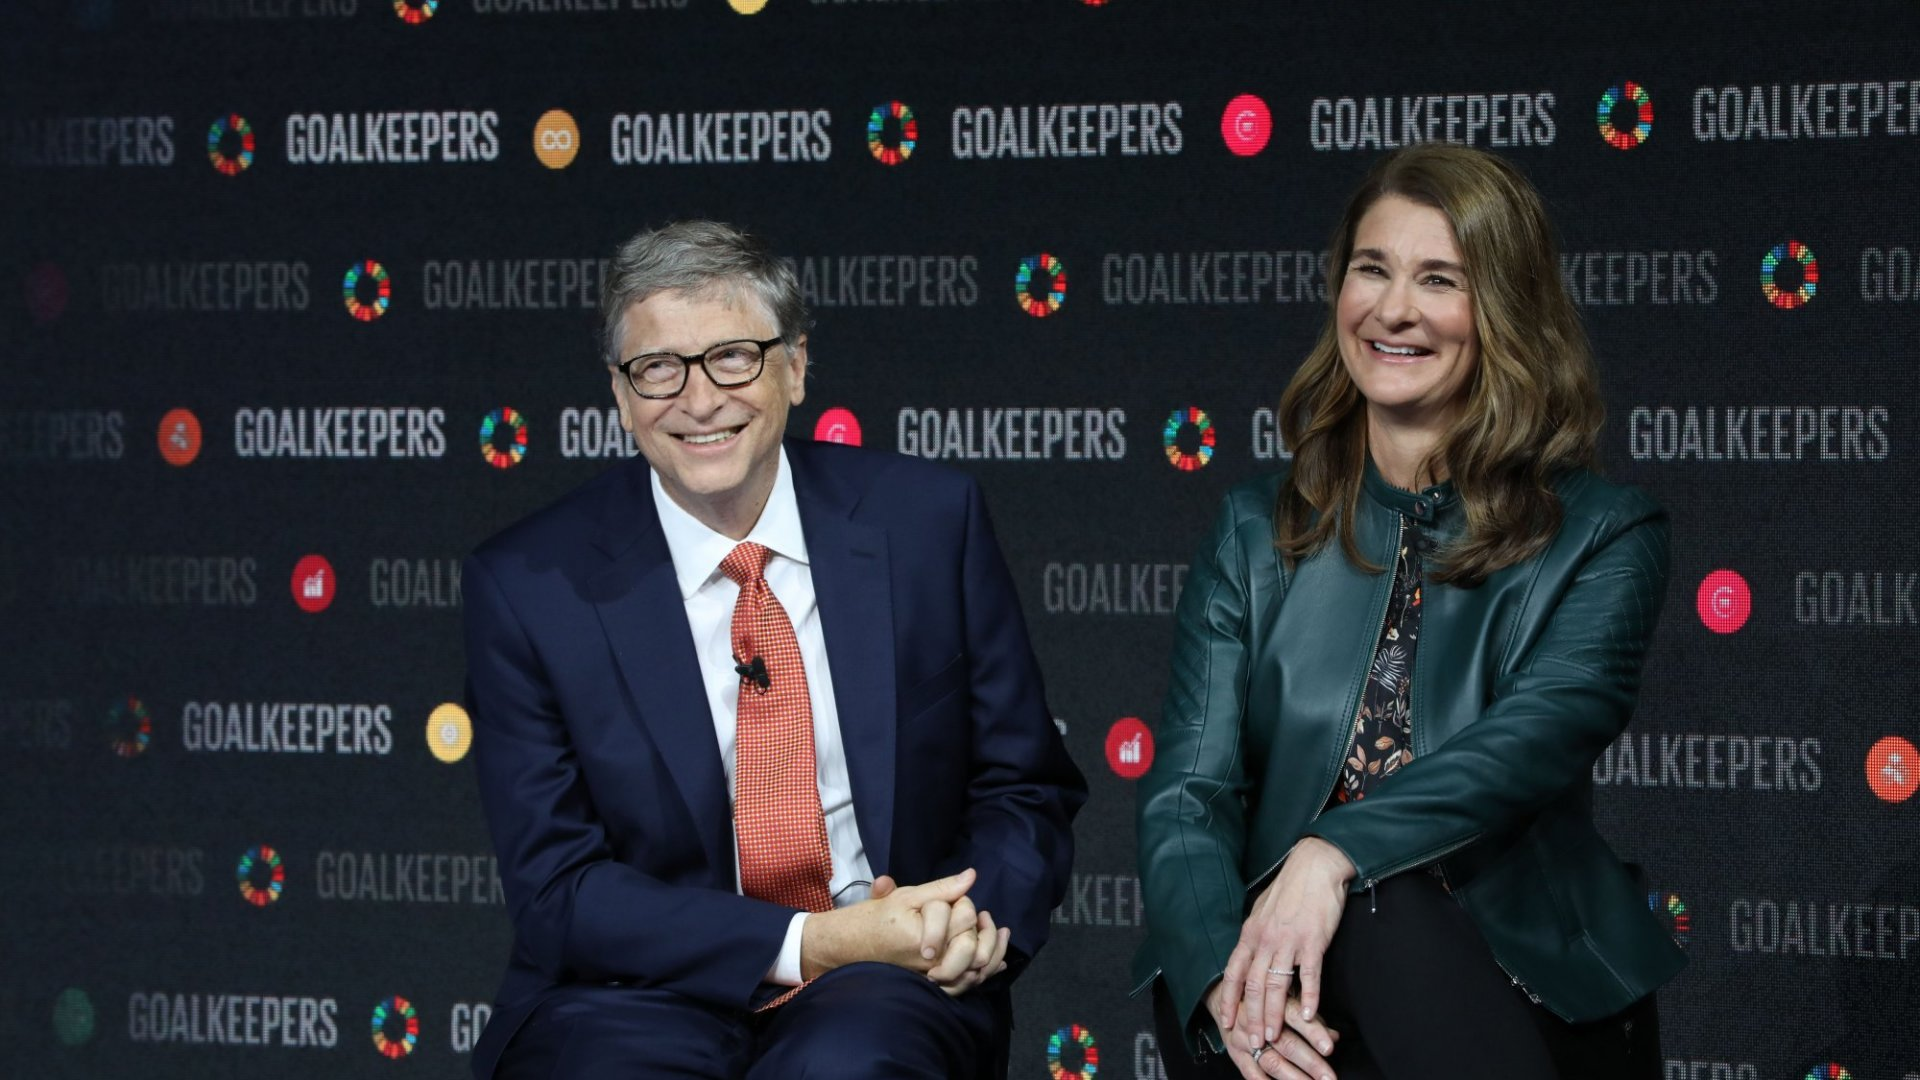 How Do You Know You're In a Successful Marriage? Melinda and Bill Gates Say This 1 Thing Is the Surest Sign